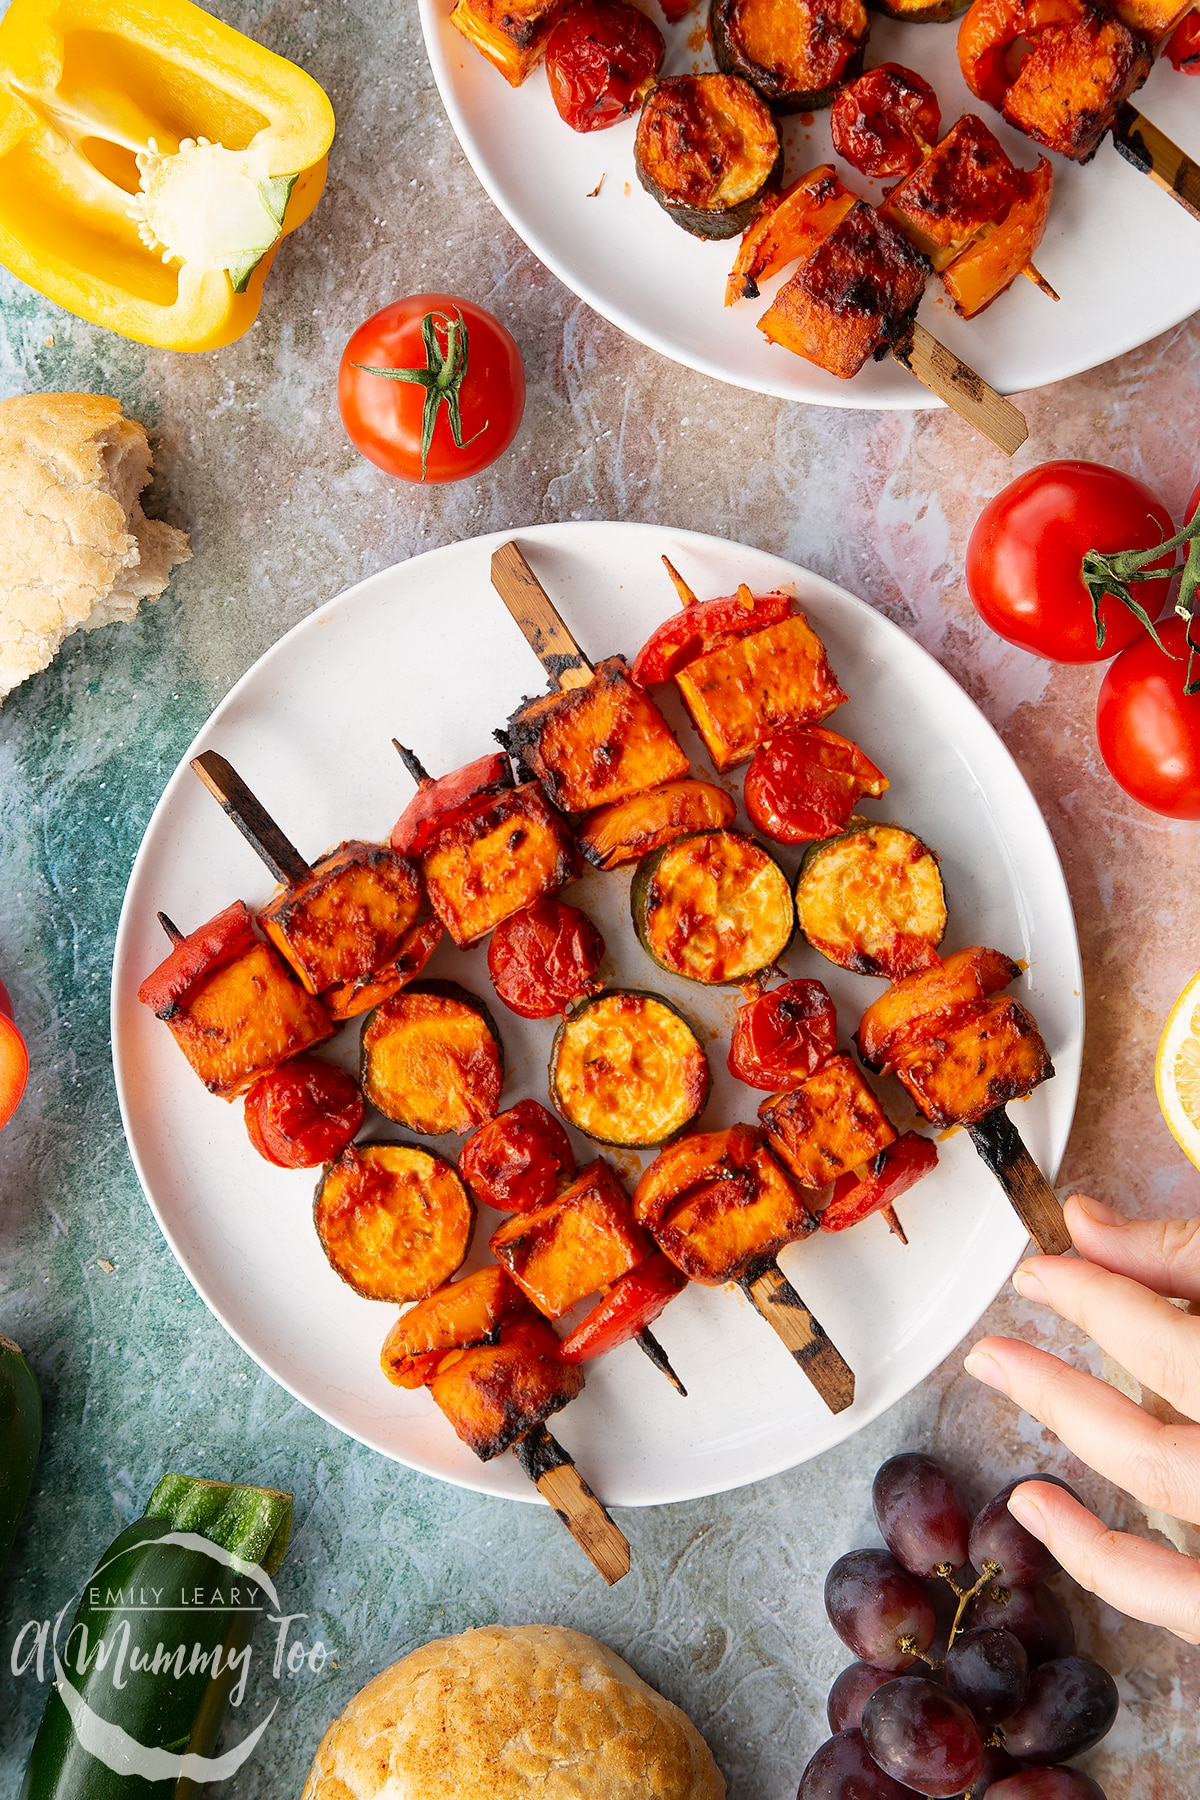 Tofu skewers arranged on a white plate. A hand reaches for one.